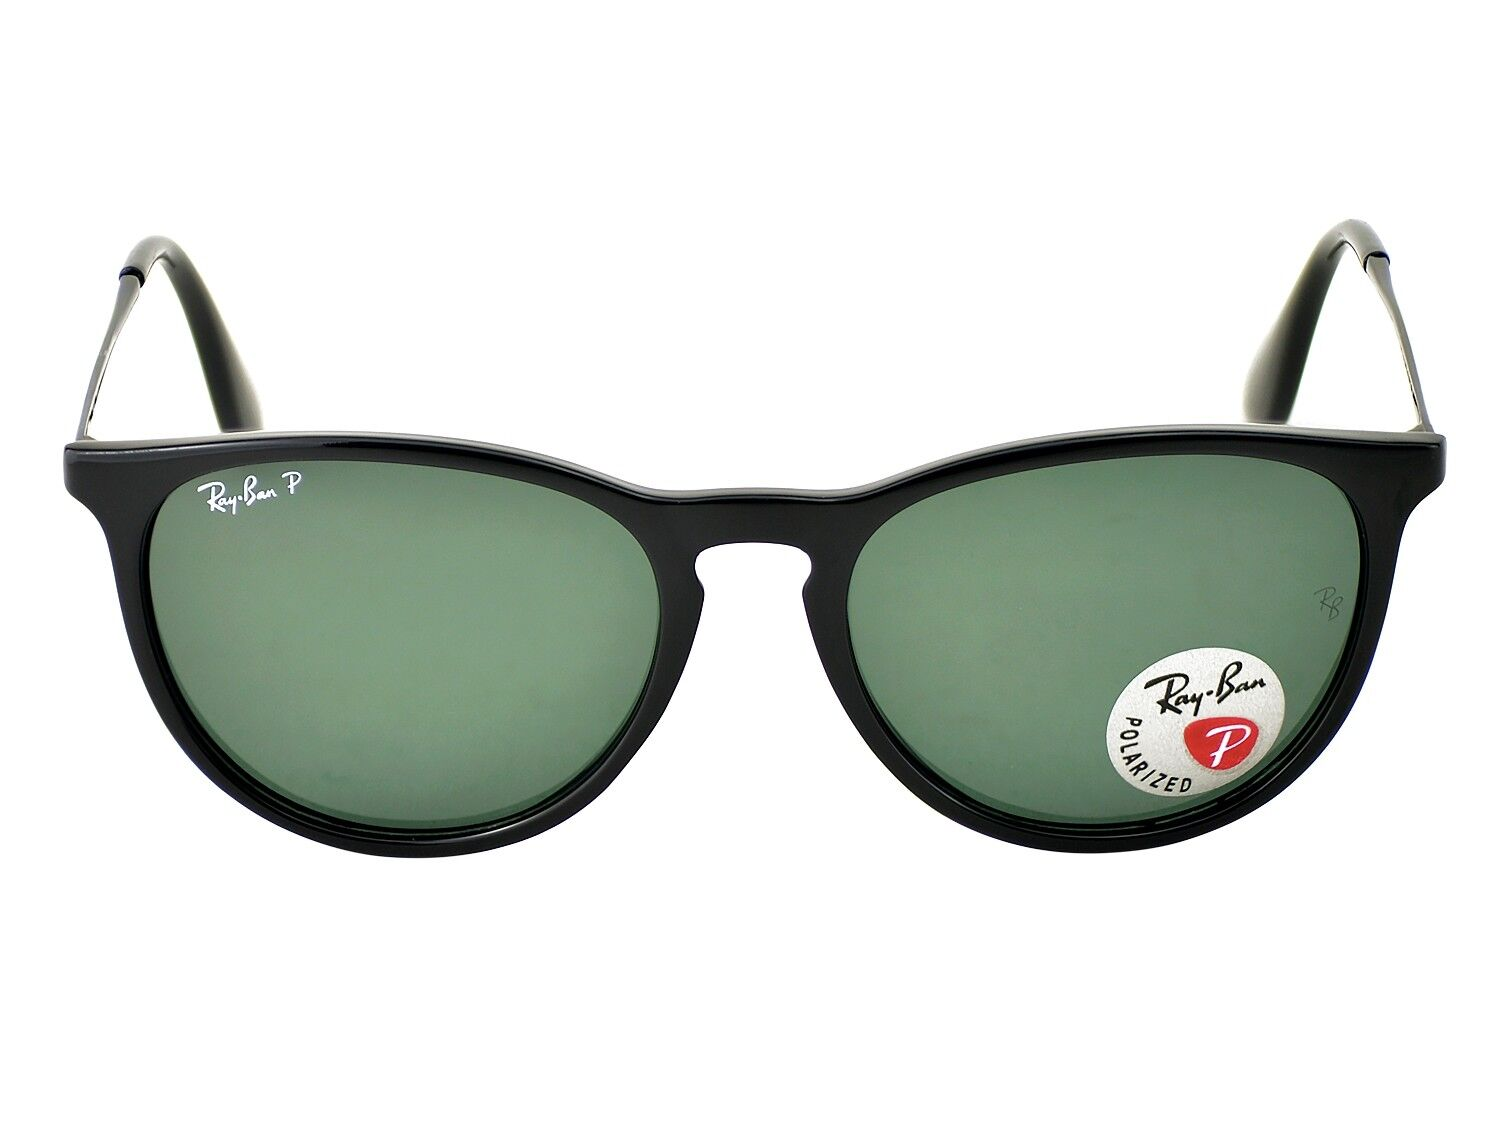 Ray-Ban RB4171 601/2P 54mm Sunglasses